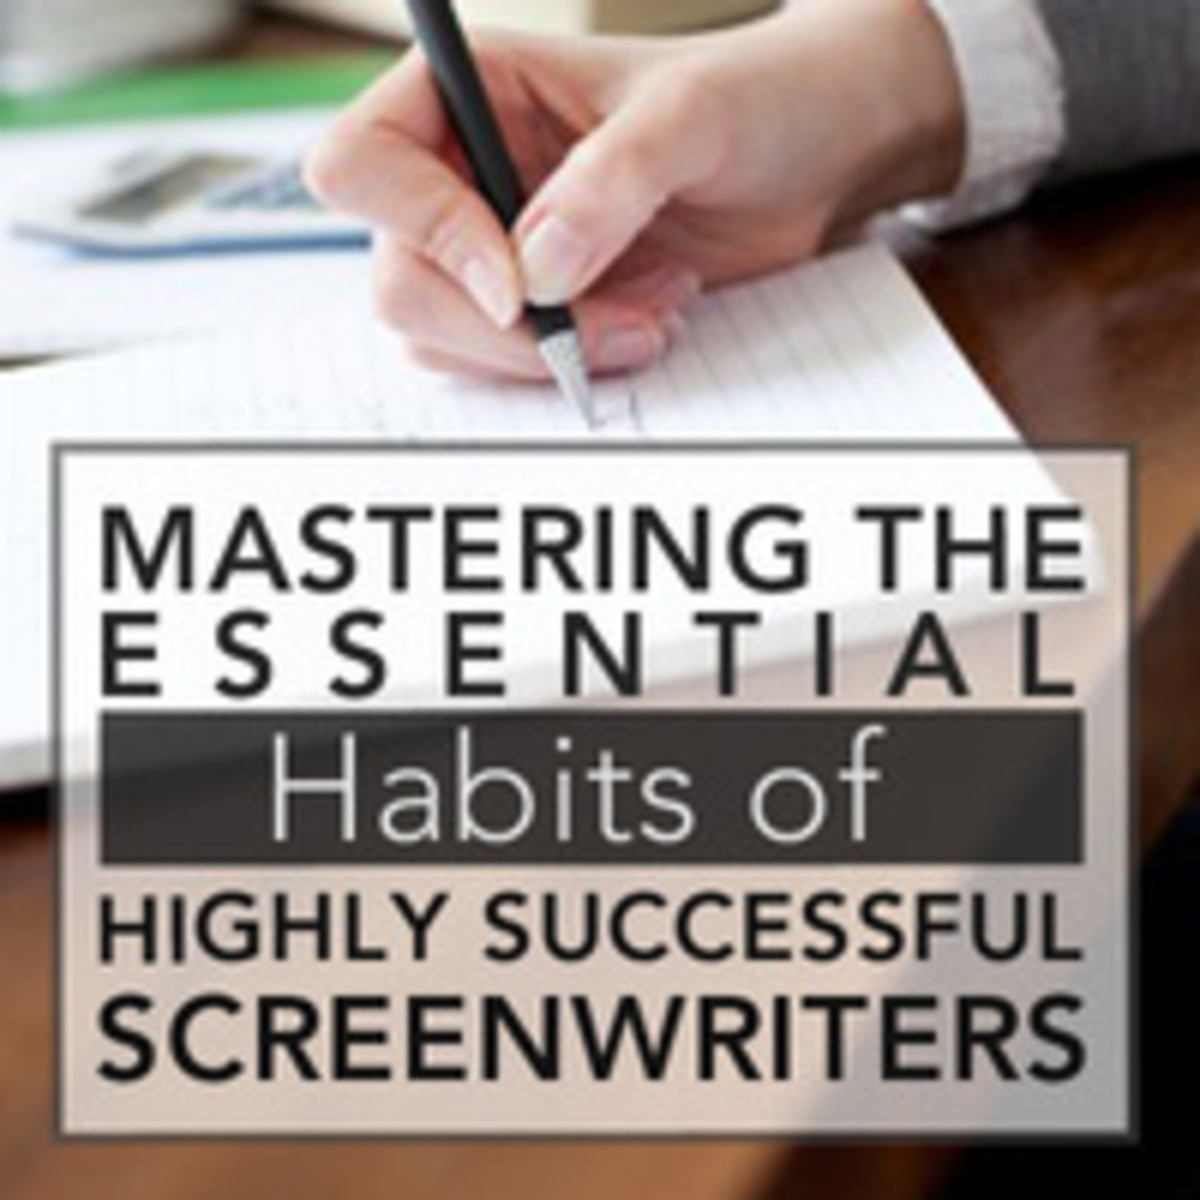 Mastering the Essential Habits of Highly Successful Screenwriters